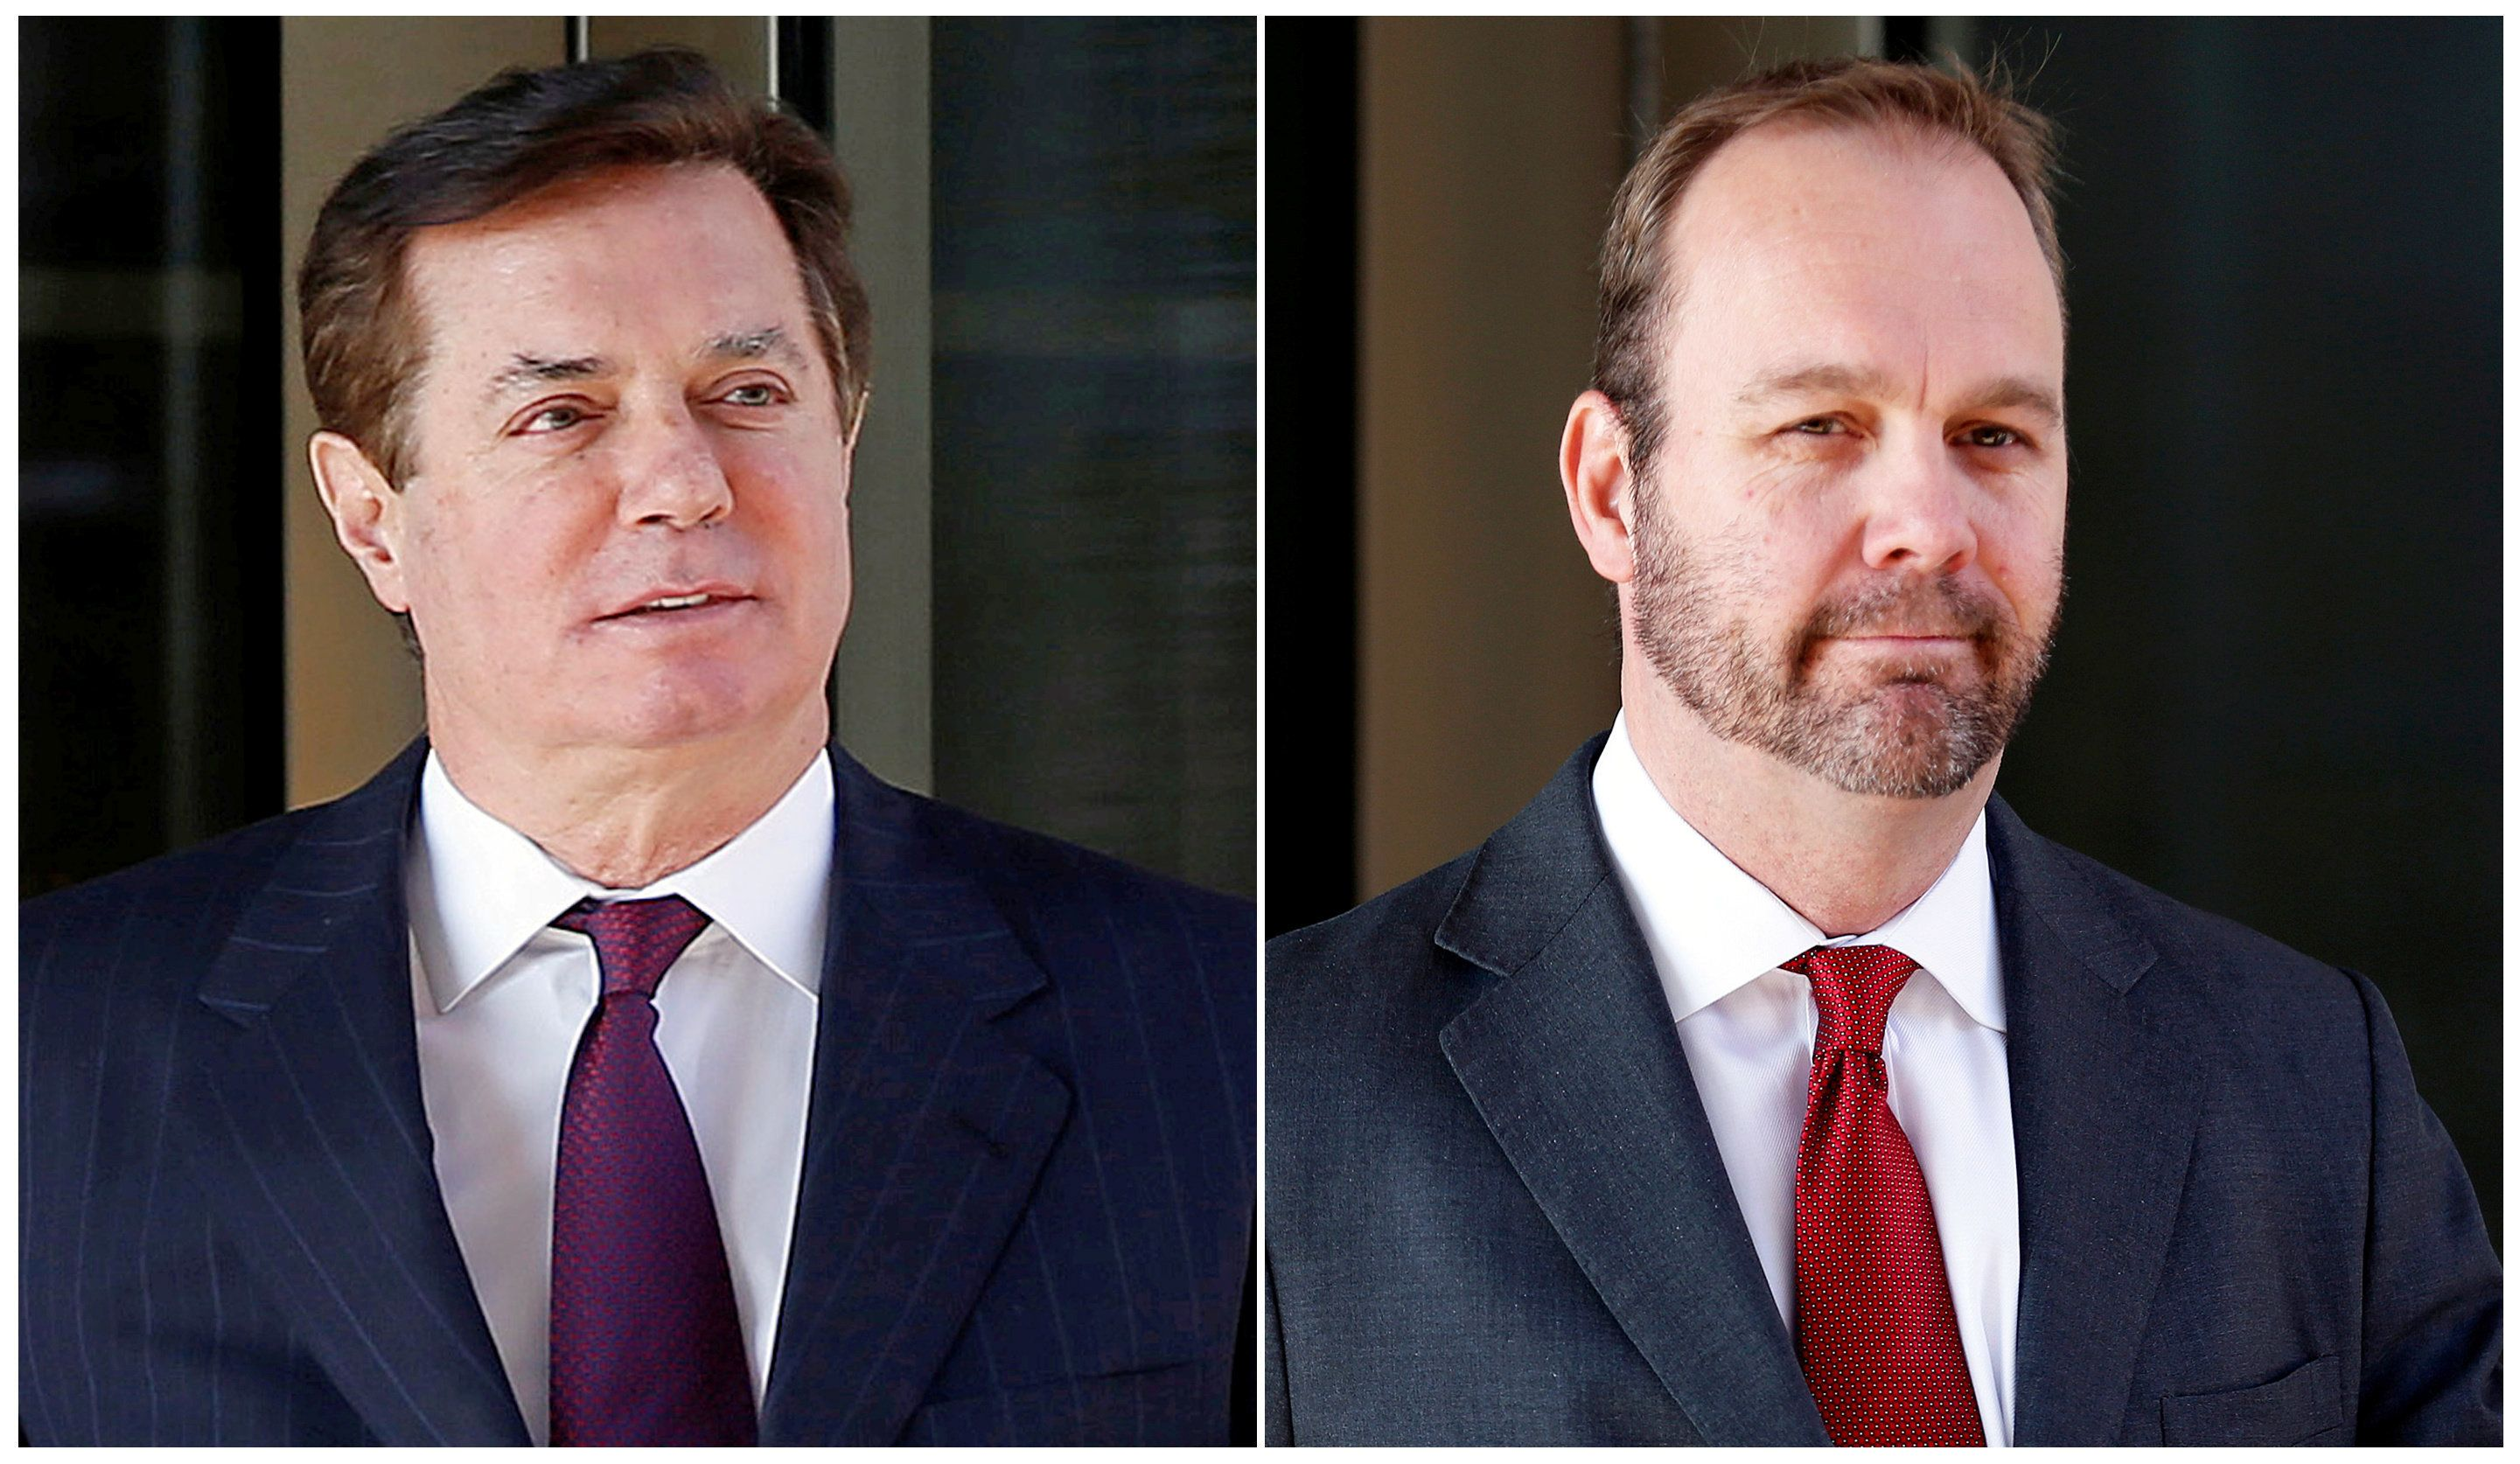 In testimony Tuesday Rick Gates detailed various schemes he engaged in while working for Paul Manafort